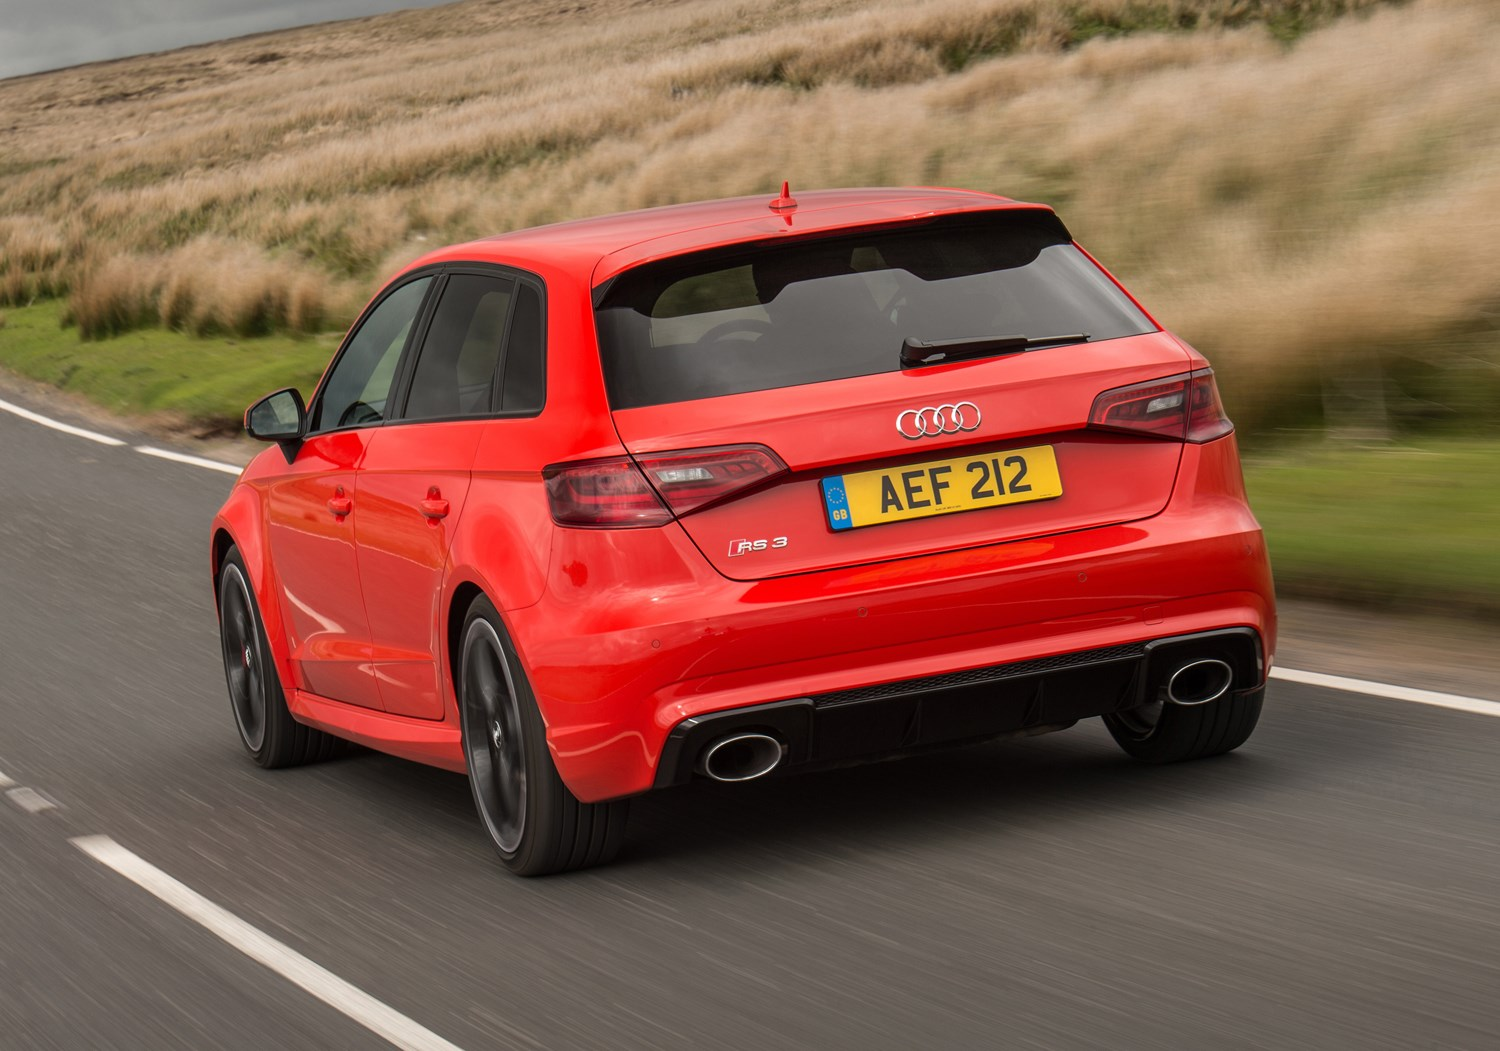 2016 audi rs3 for sale uk 15